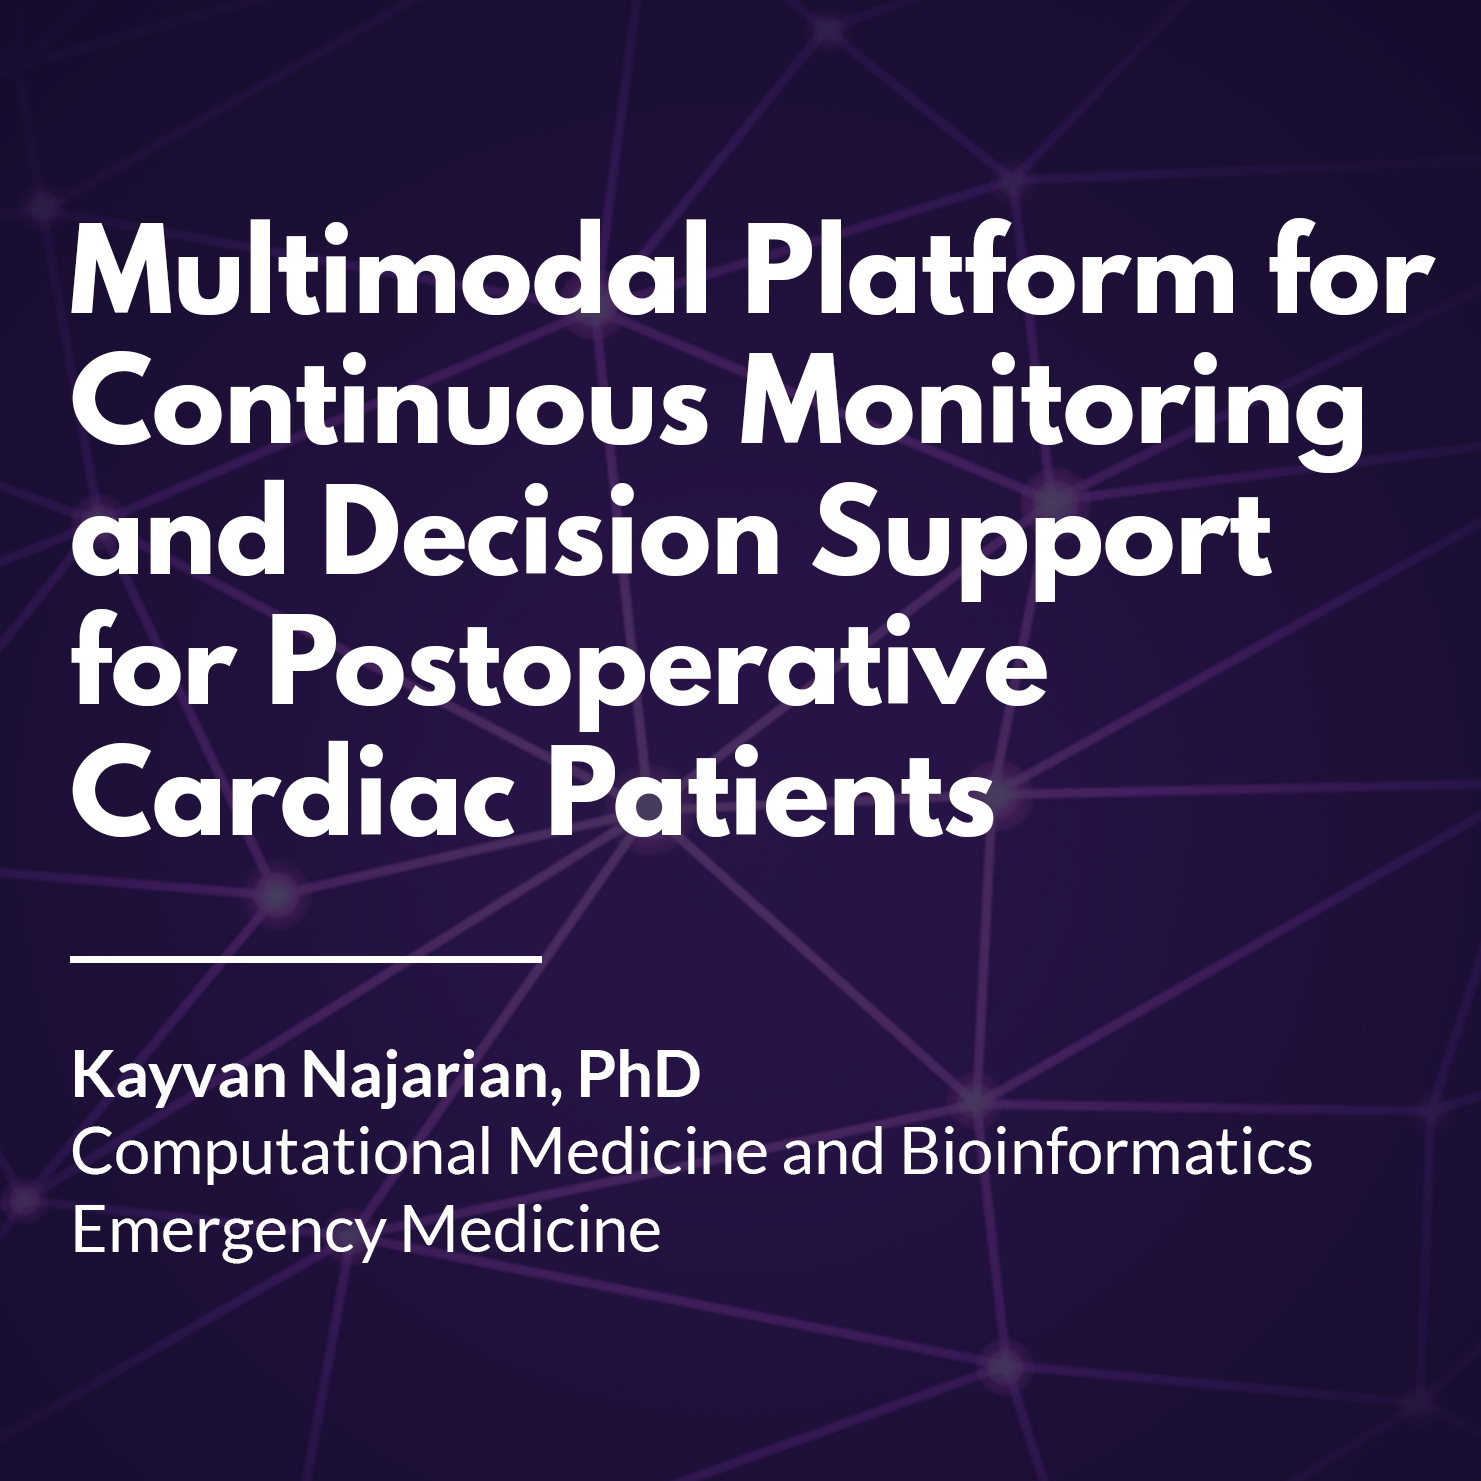 Multimodal Platform for Continuous Monitoring and Decision Support for Postoperative Cardiac Patients.png